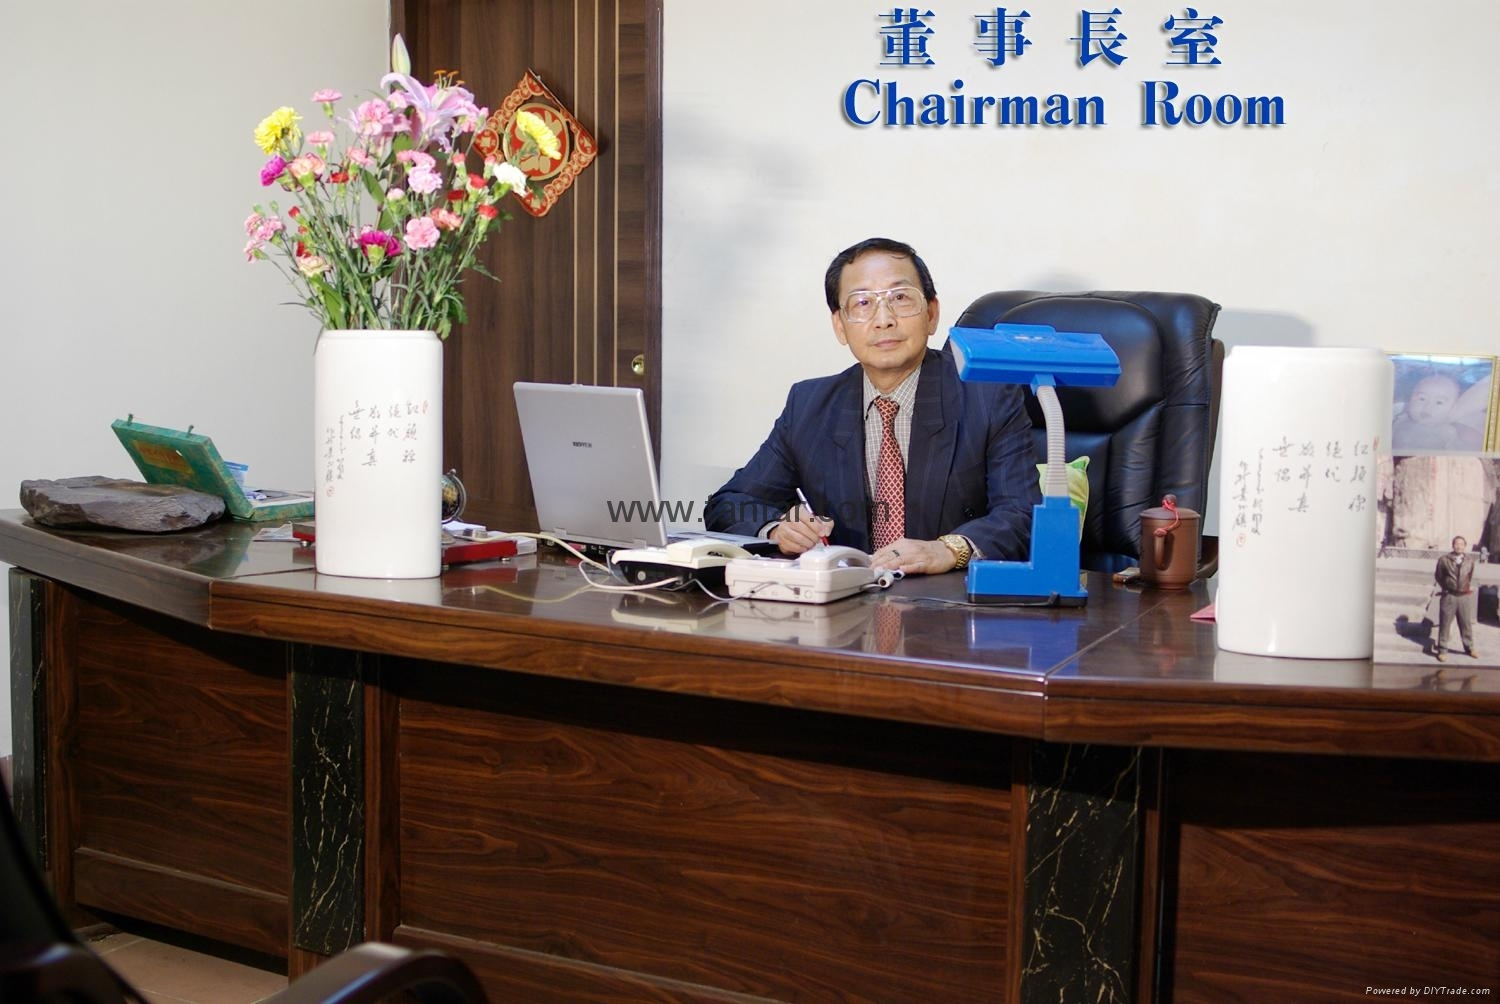 Chairman Lee Chee Cheong